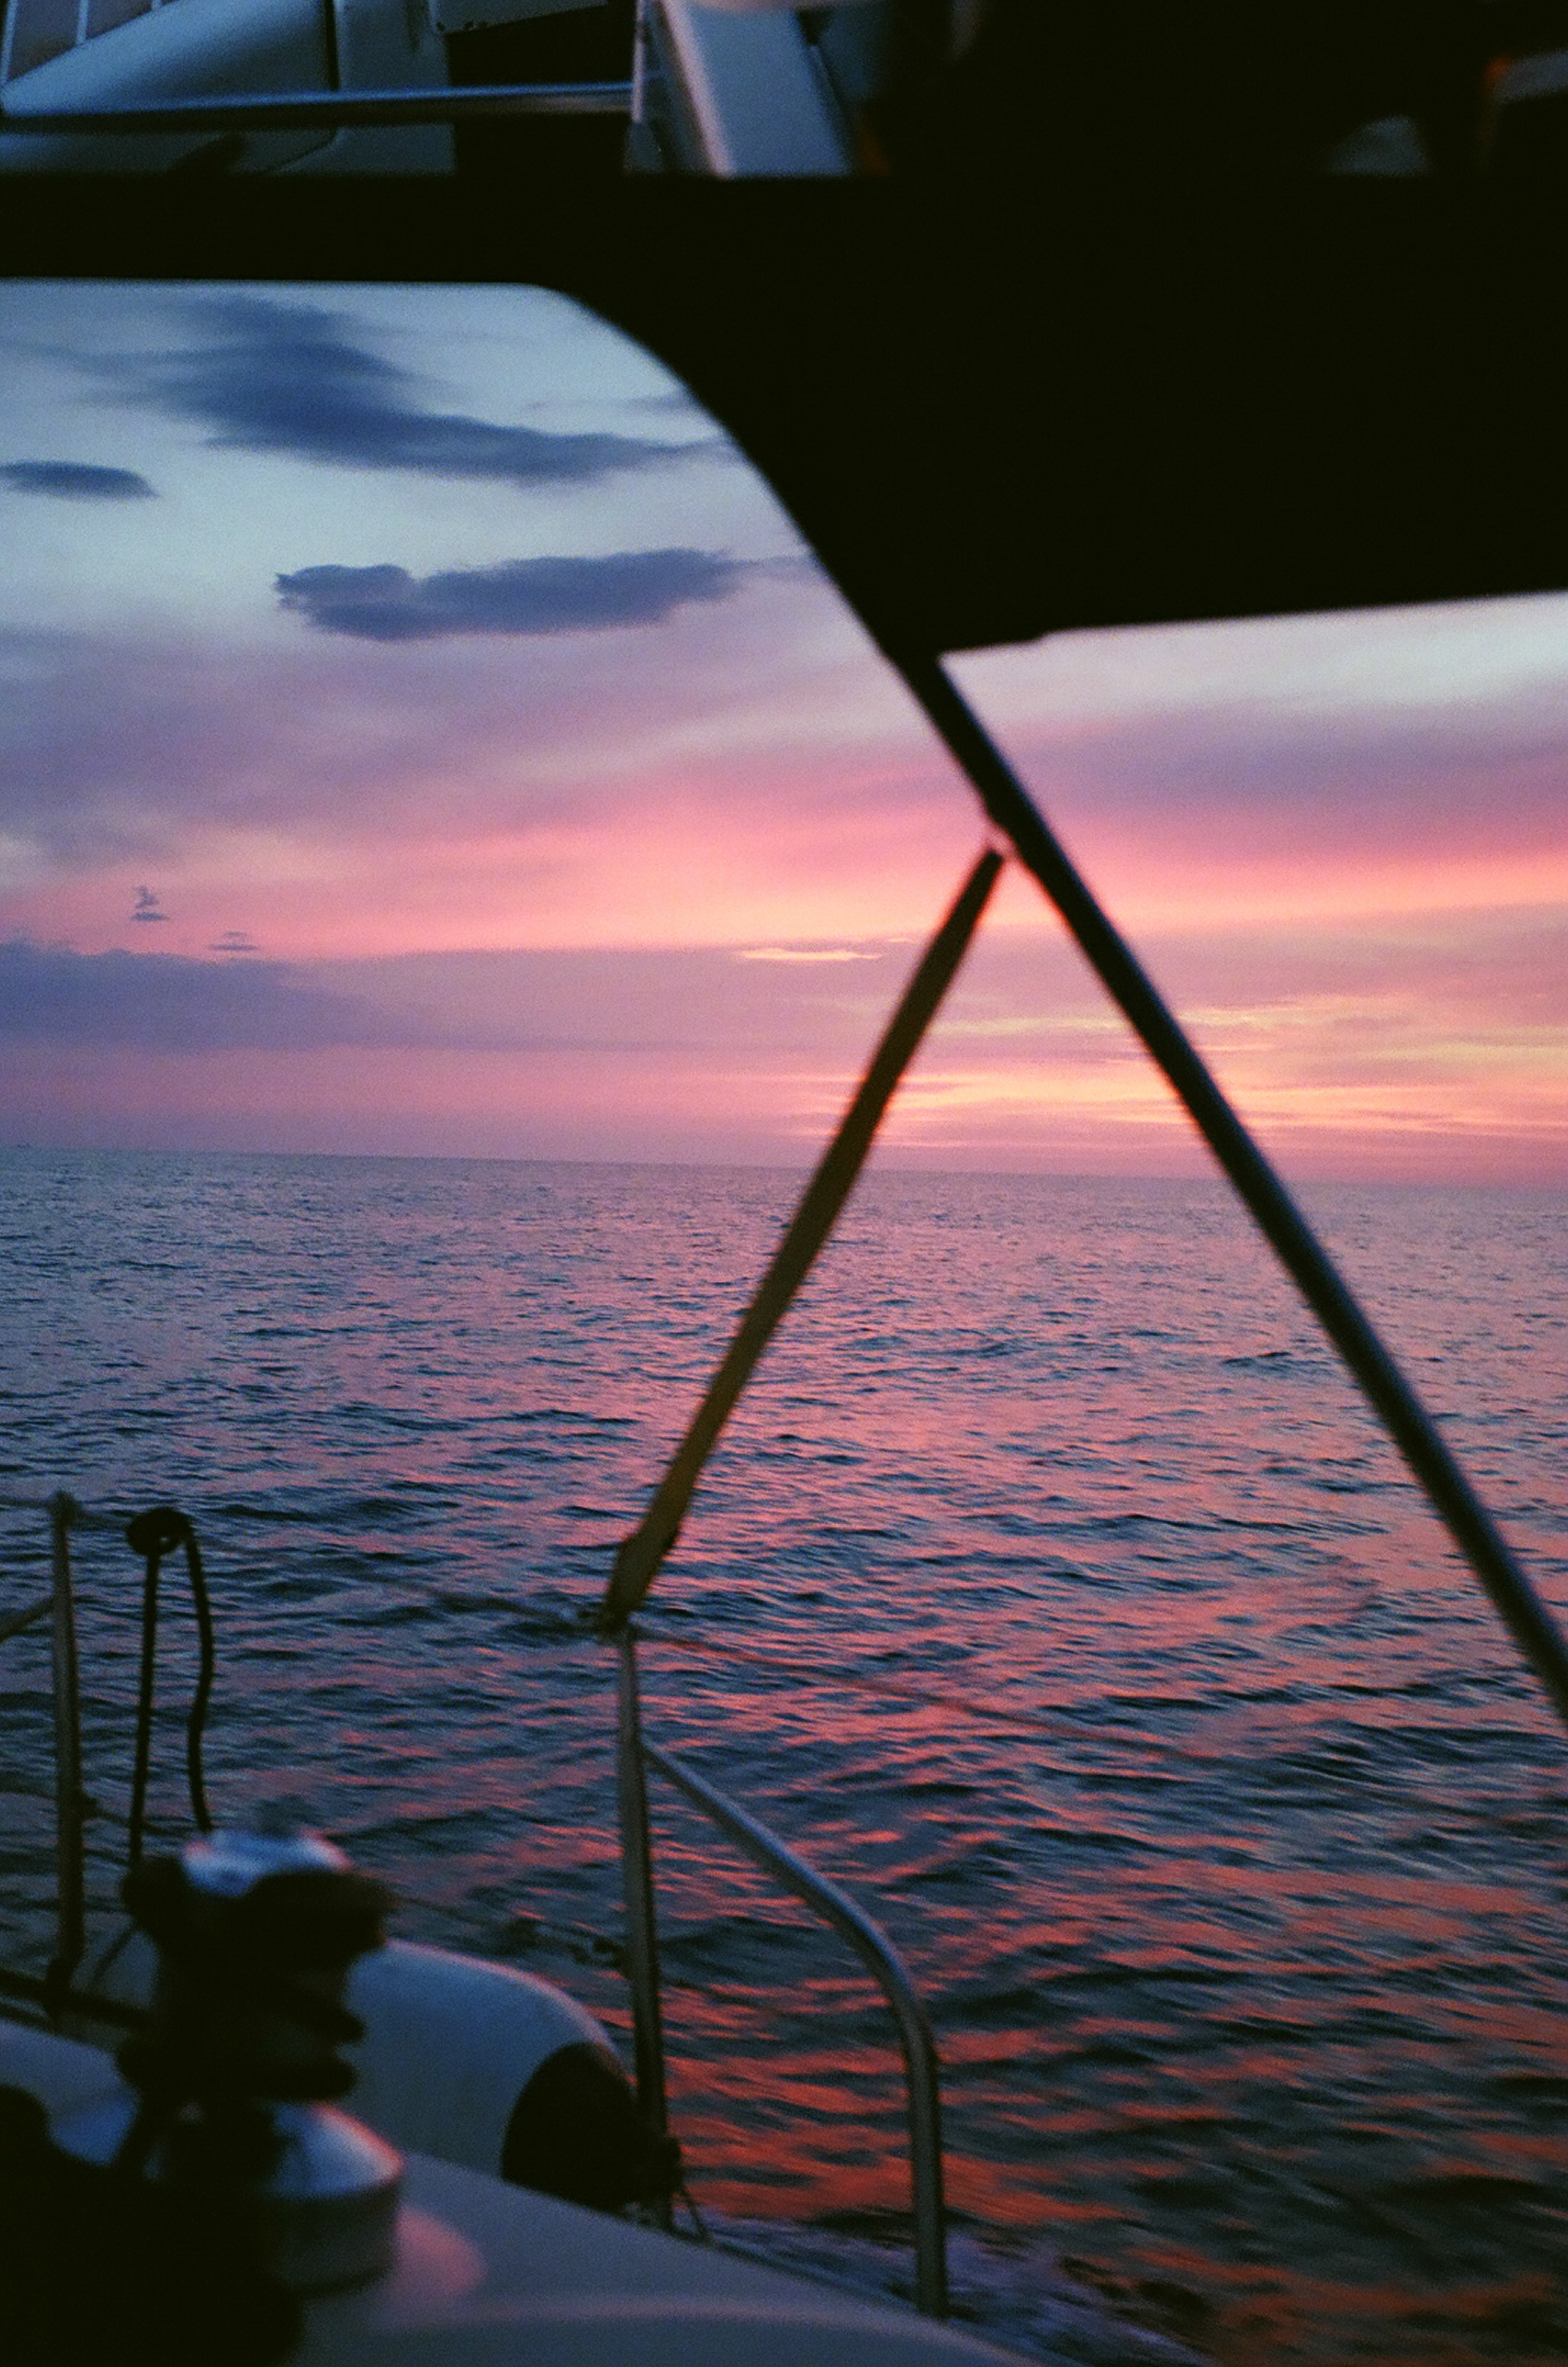 Sailboat Photo journey